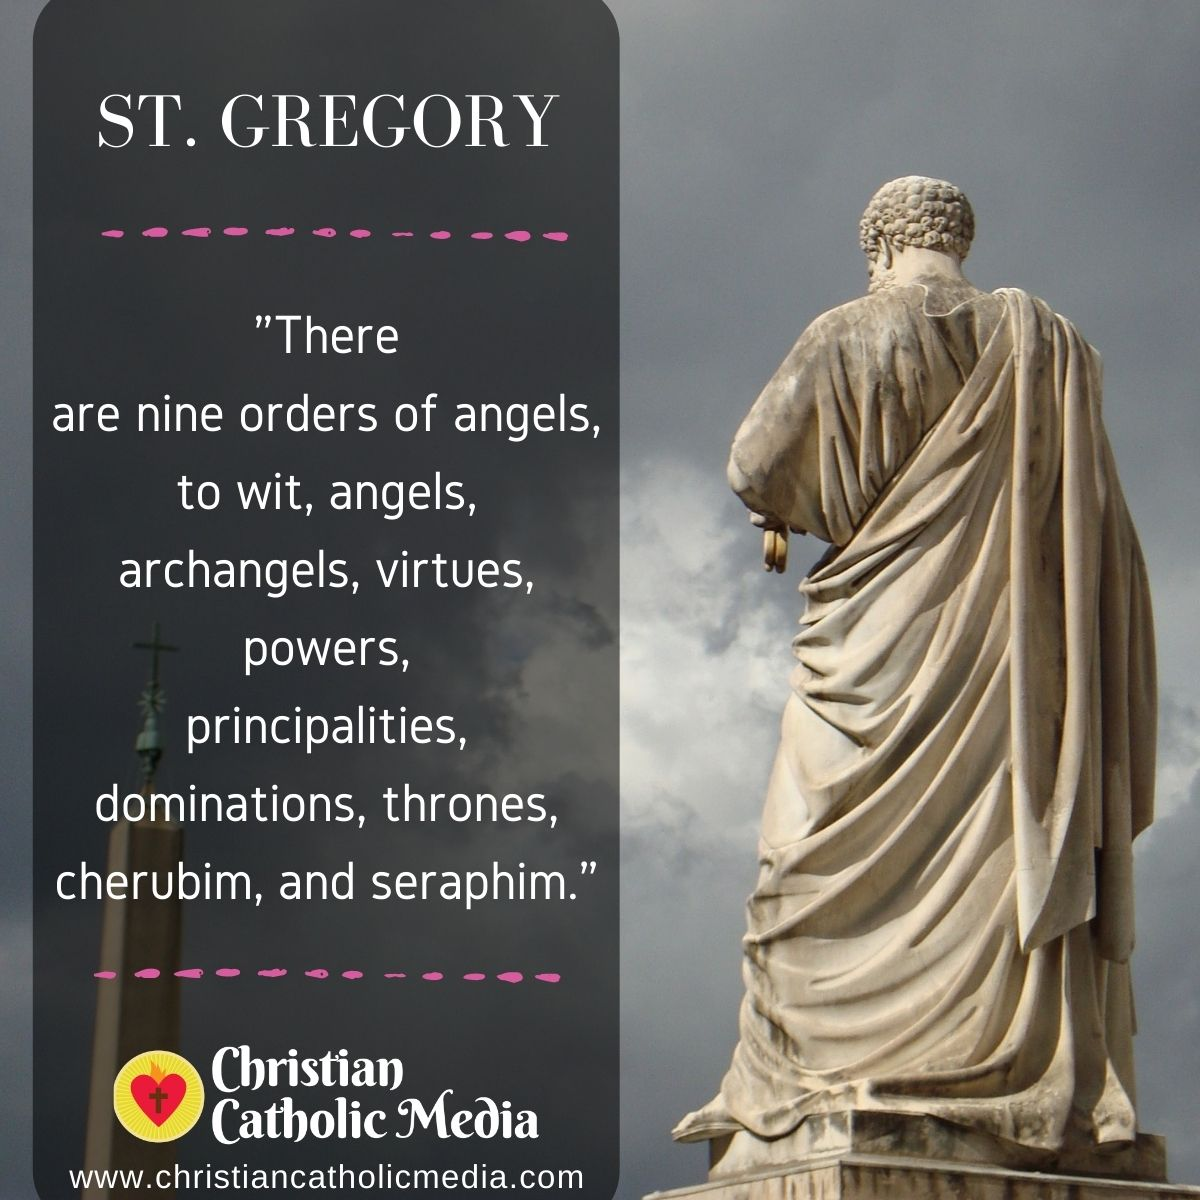 St. Gregory - Monday February 22, 2021